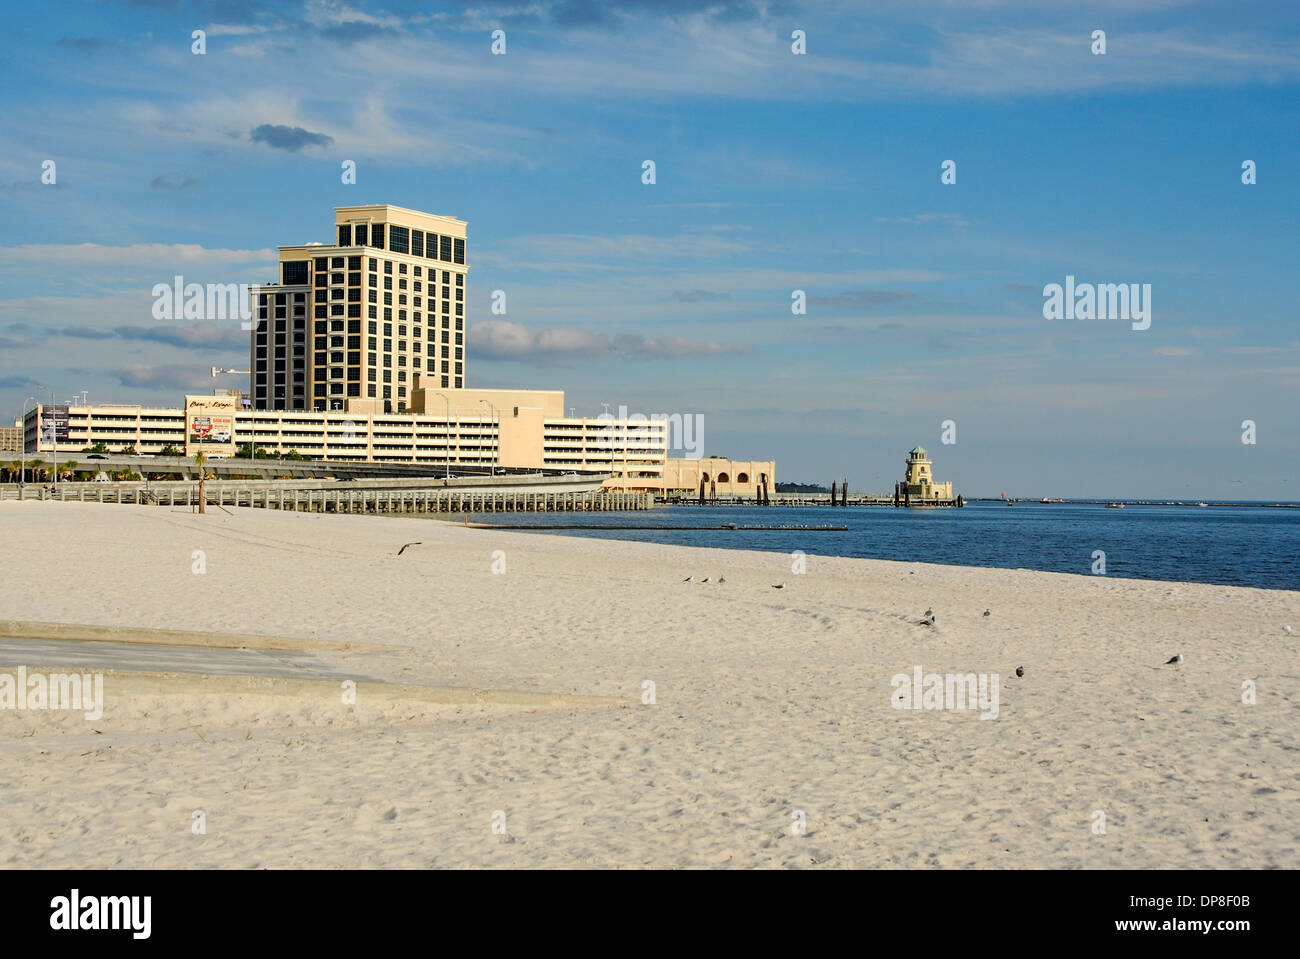 Hotels Along The Beach In Biloxi Ms